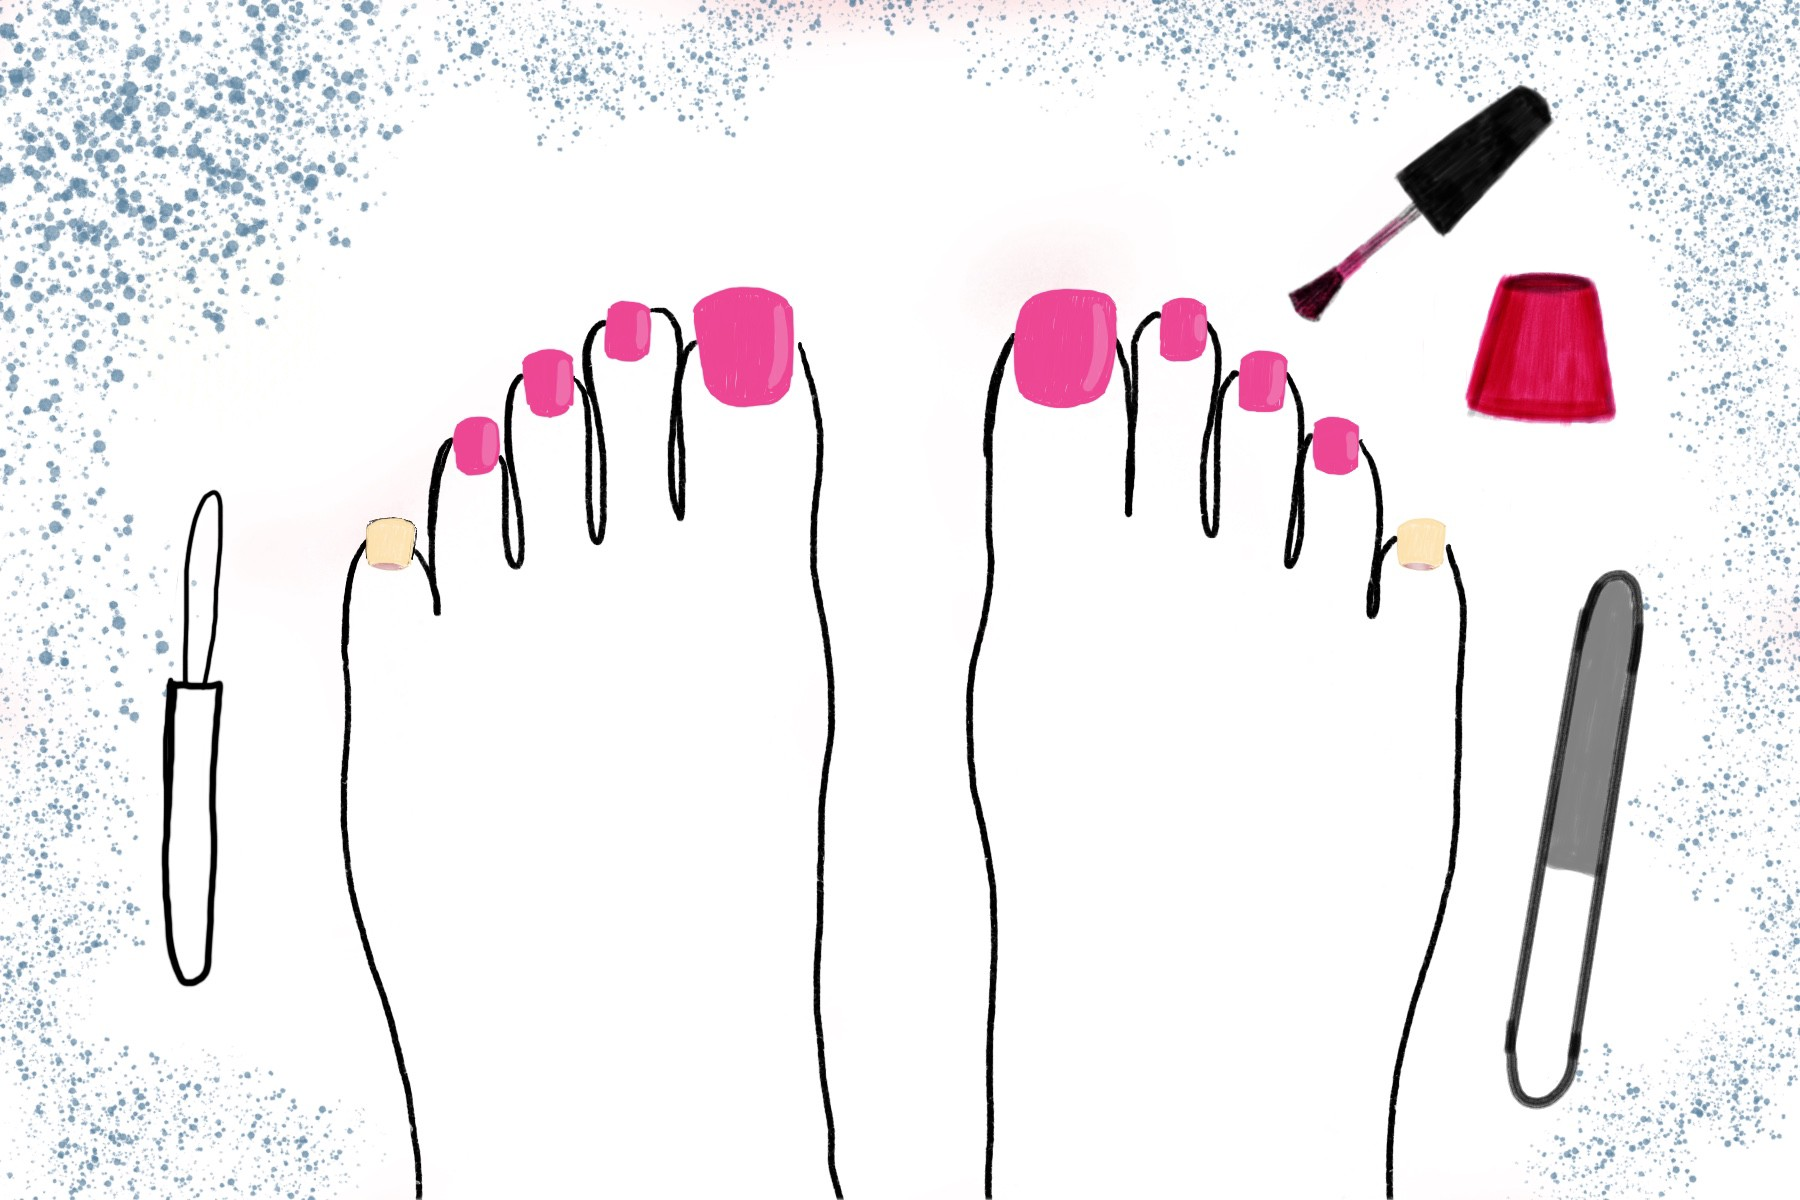 Do toenails their why paint guys Why More